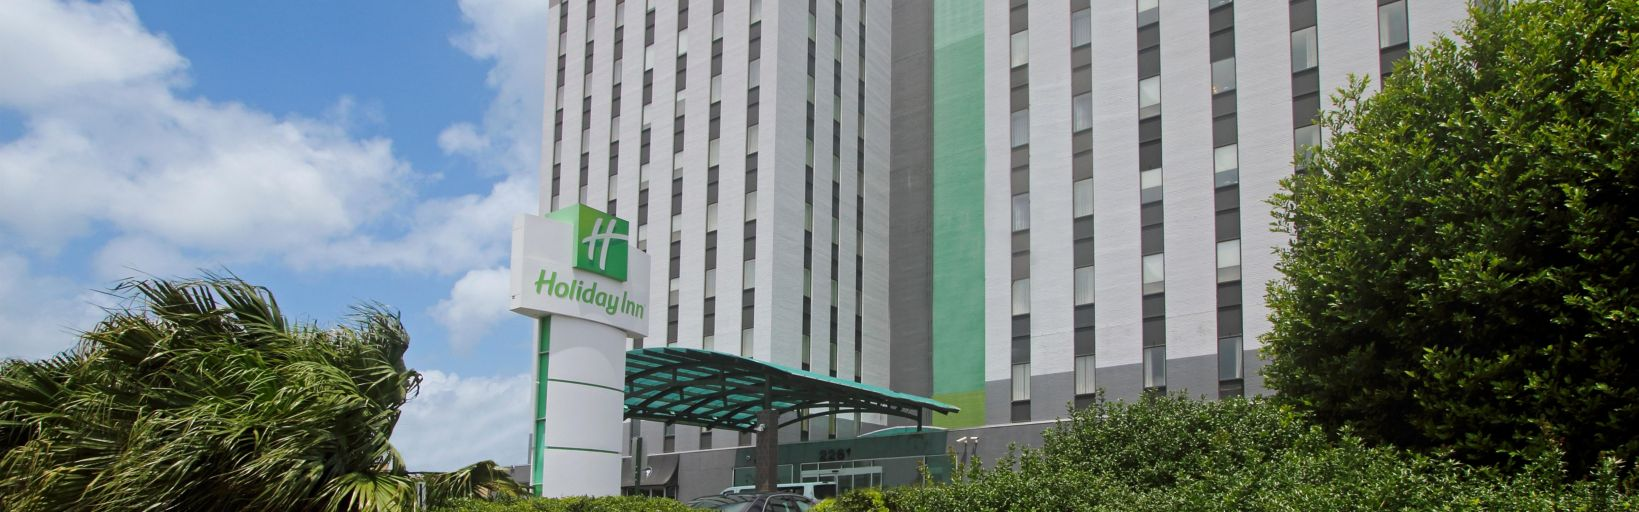 Welcome To Holiday Inn Hotel Metairie